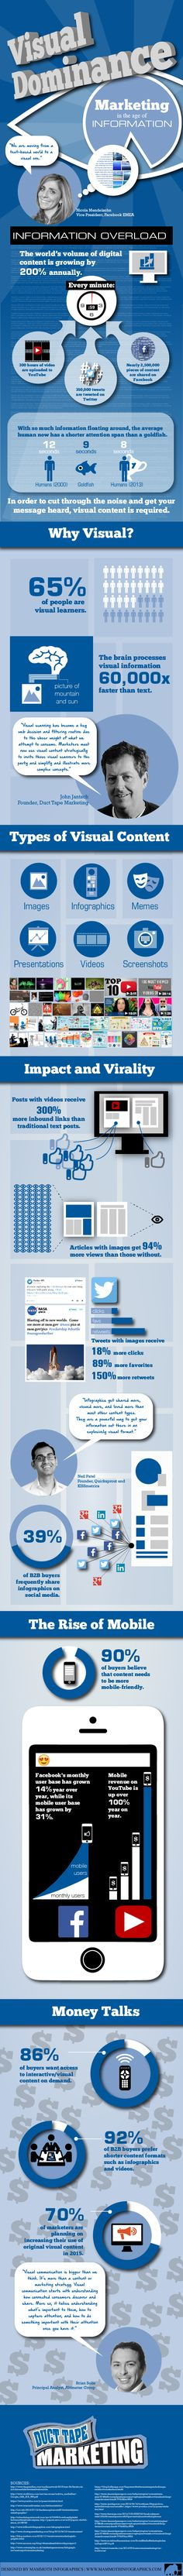 Use visual content to supercharge your marketing. Here's a great infographic for your guidance.